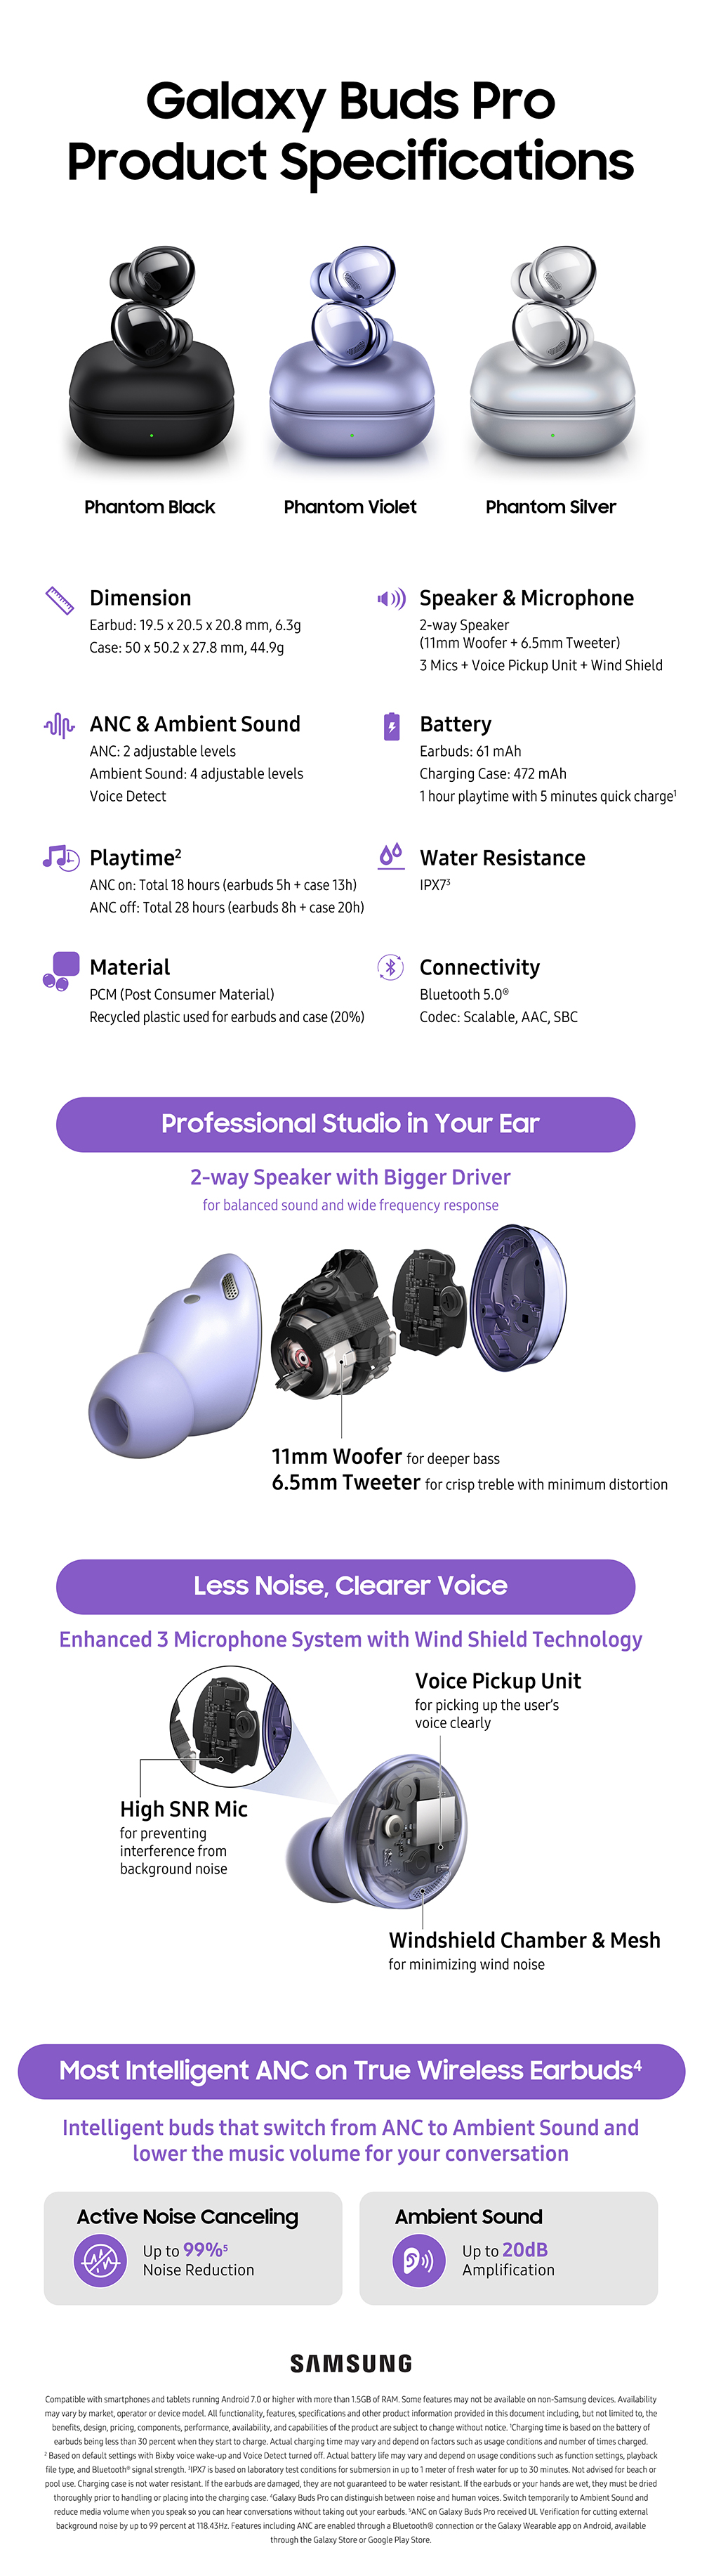 Samsung Galaxy Buds Pro Specifications Infographics